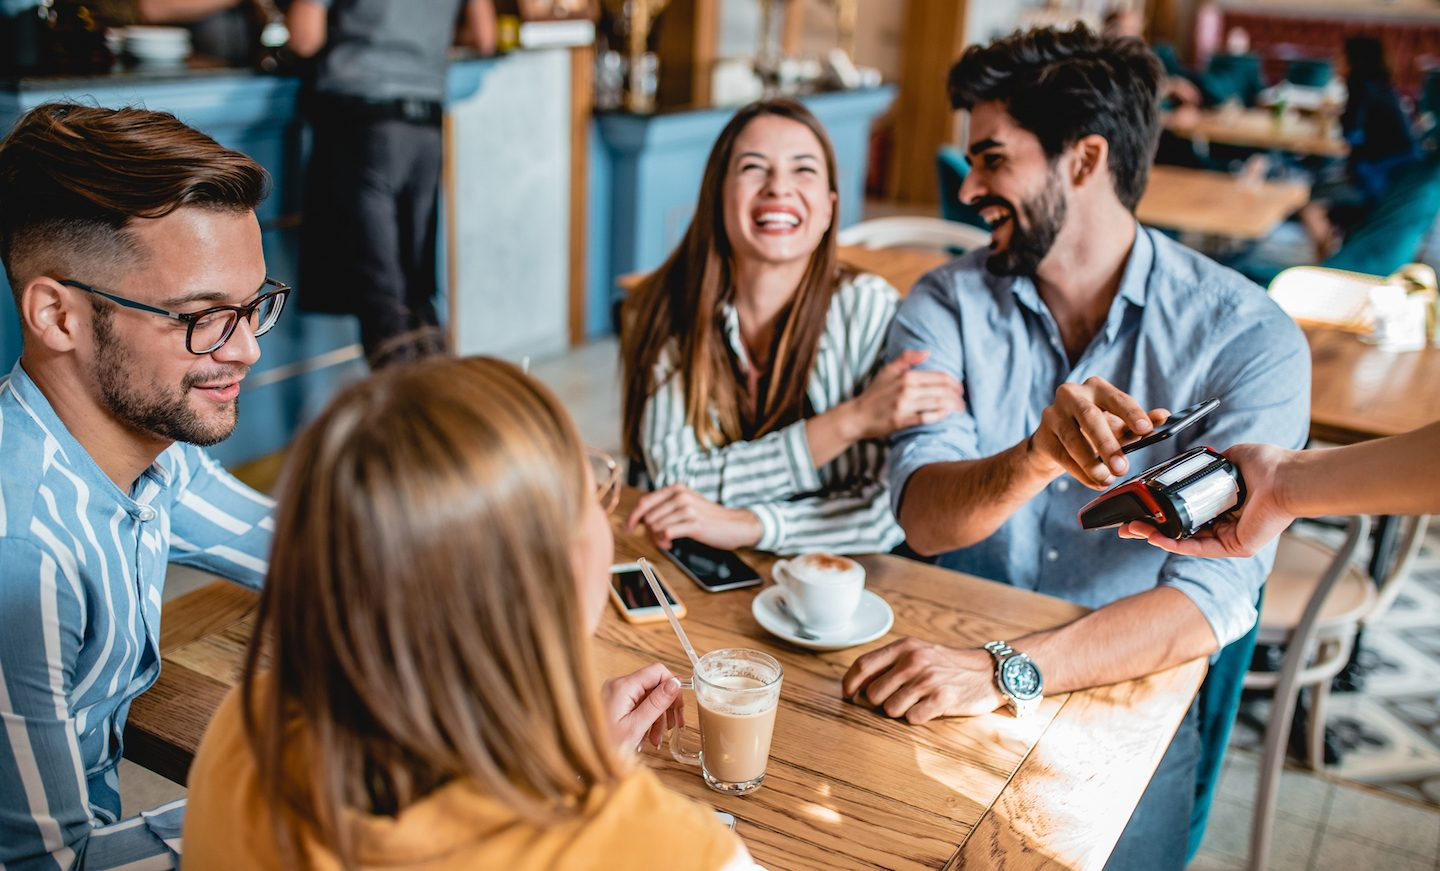 young-group-of-friends-using-credit-card-cashback-offer